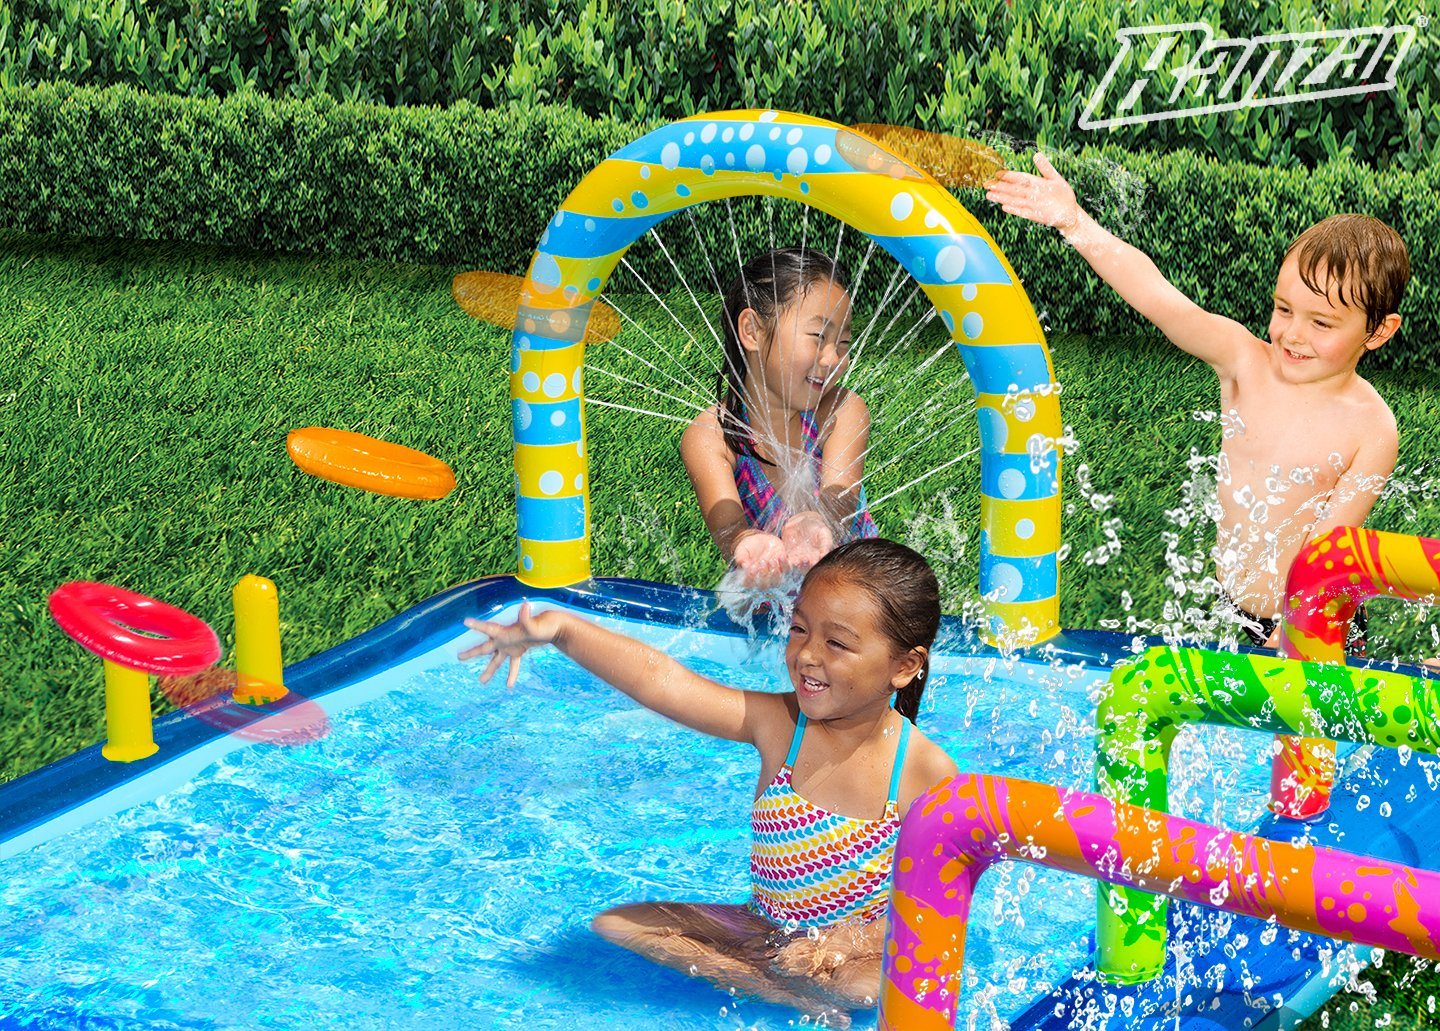 BANZAI Obstacle Course Activity Pool by BANZAI (Image #8)